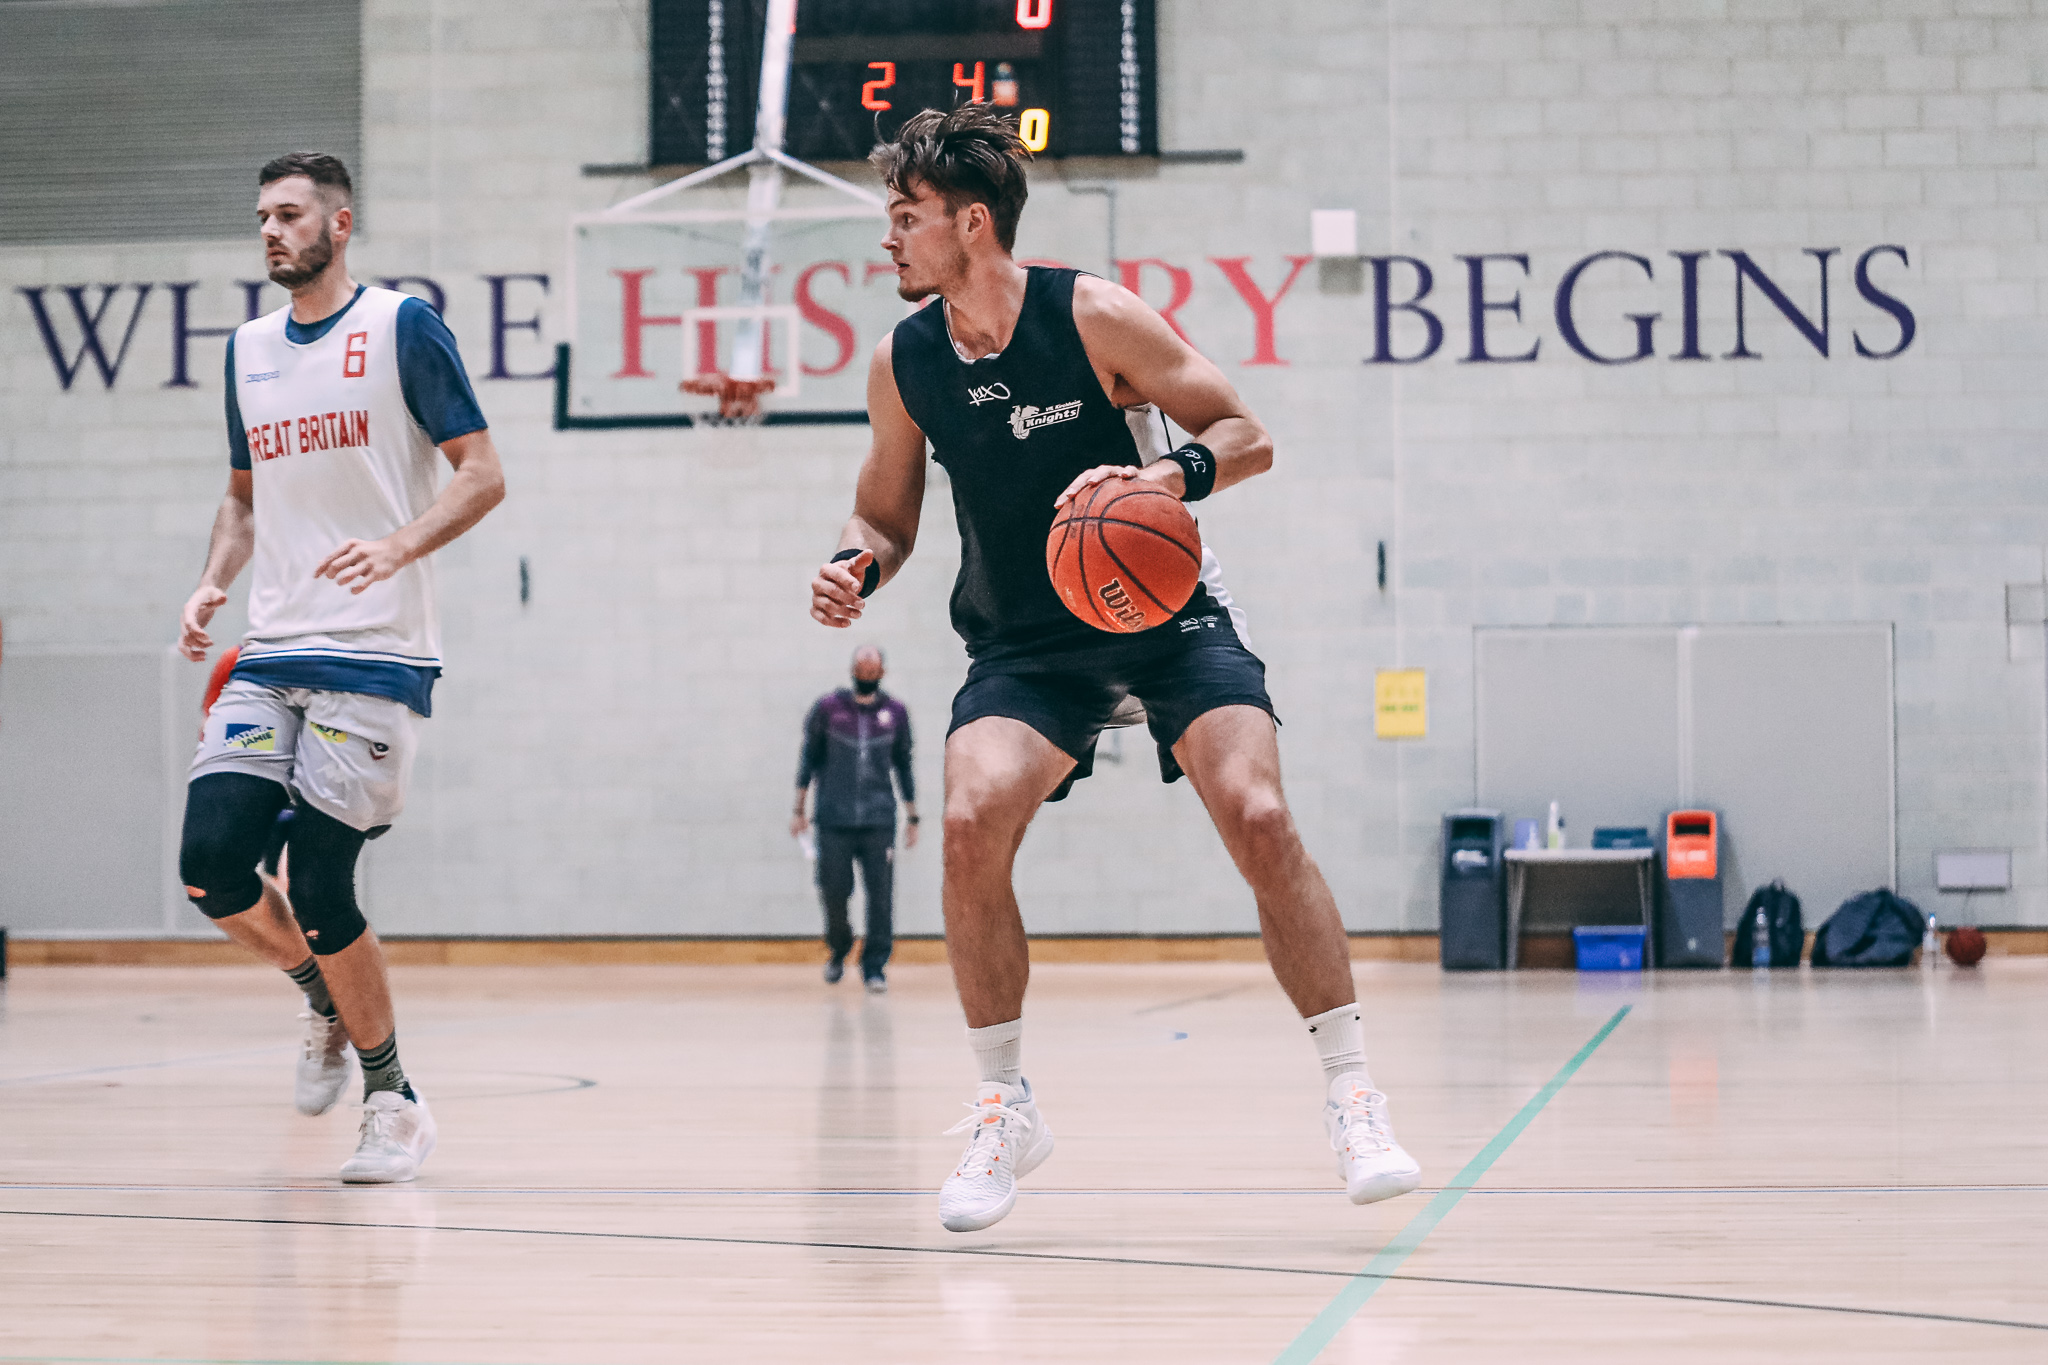 Justin Hedley Joins Loughborough Riders